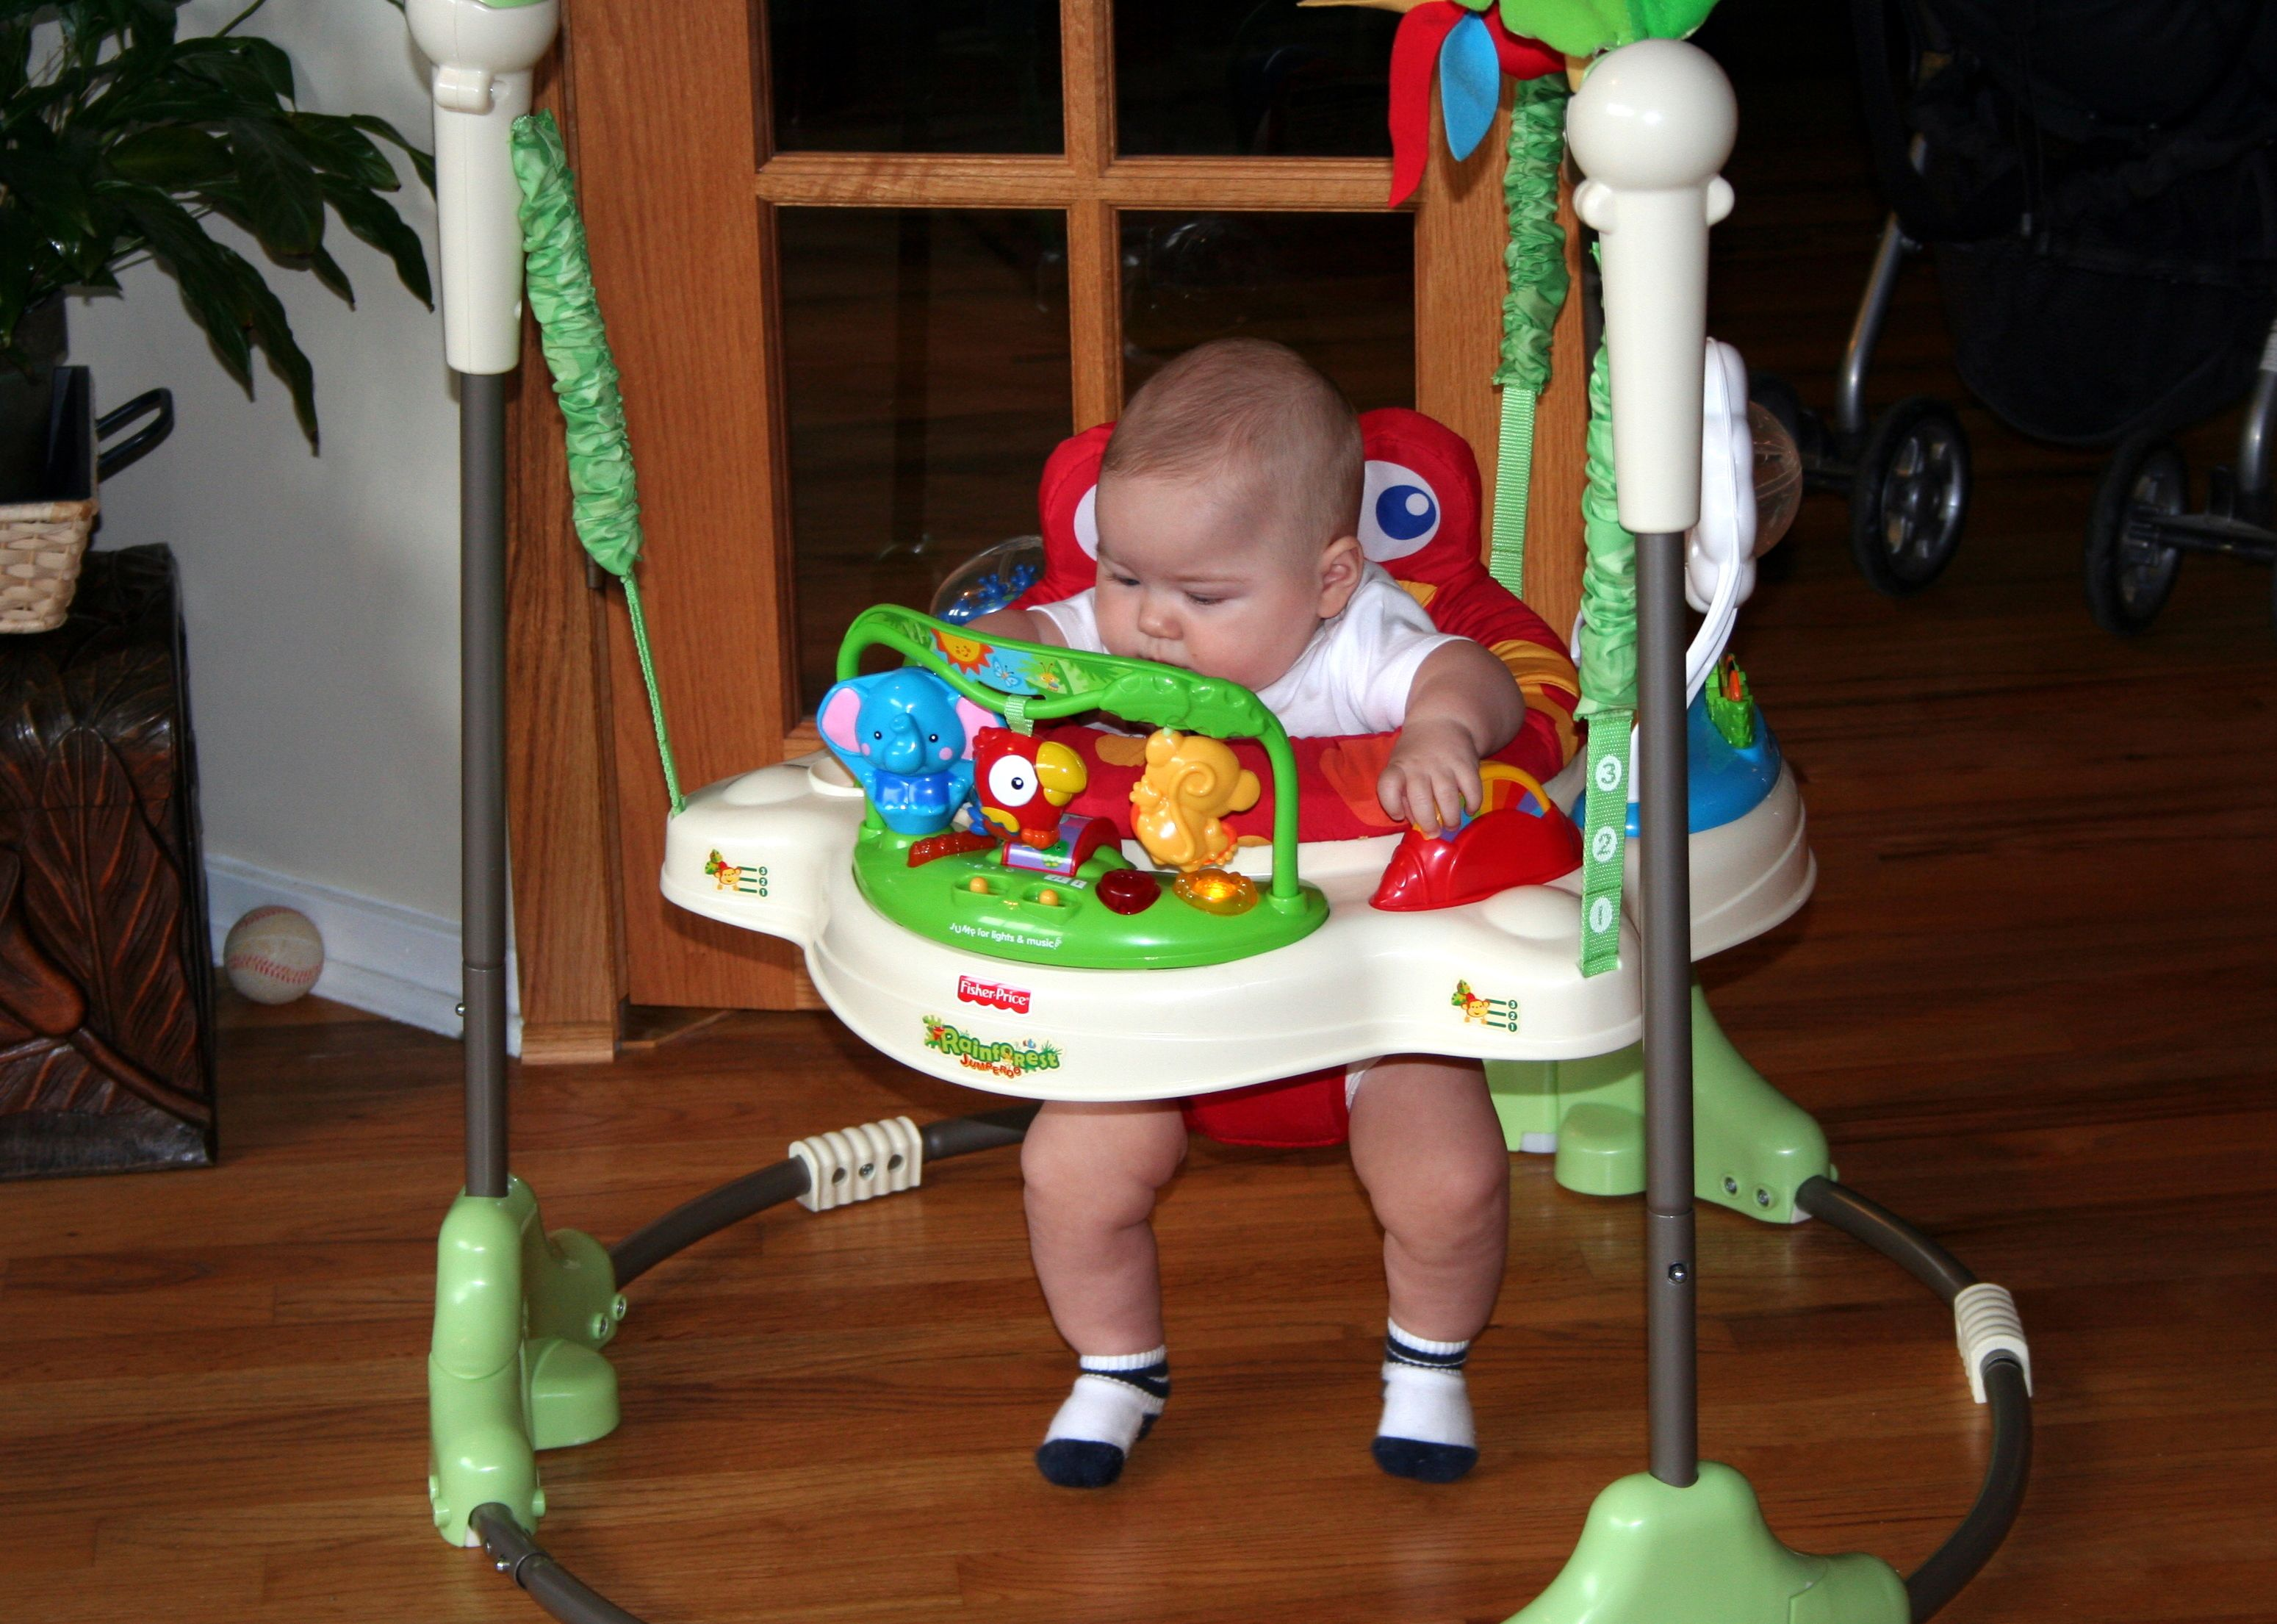 bf1fed906684 baby jumperoo Solution  Consumers should stop using the product ...